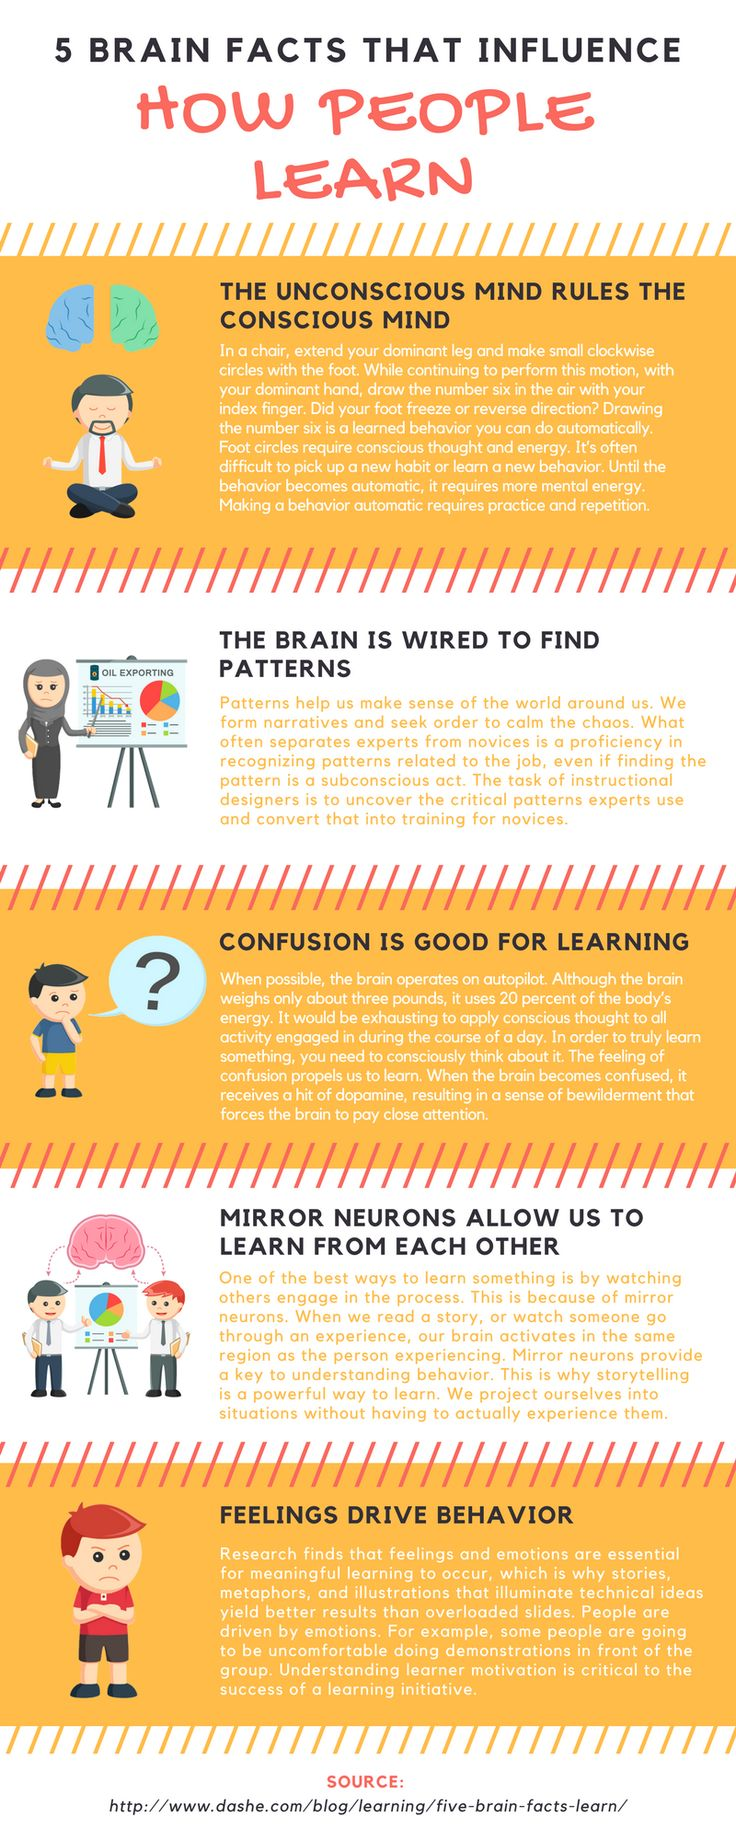 5 Brain Facts That Influence How People Learn Infographic - https://elearninginfographics.com/5-brain-facts-that-influence-how-people-learn/